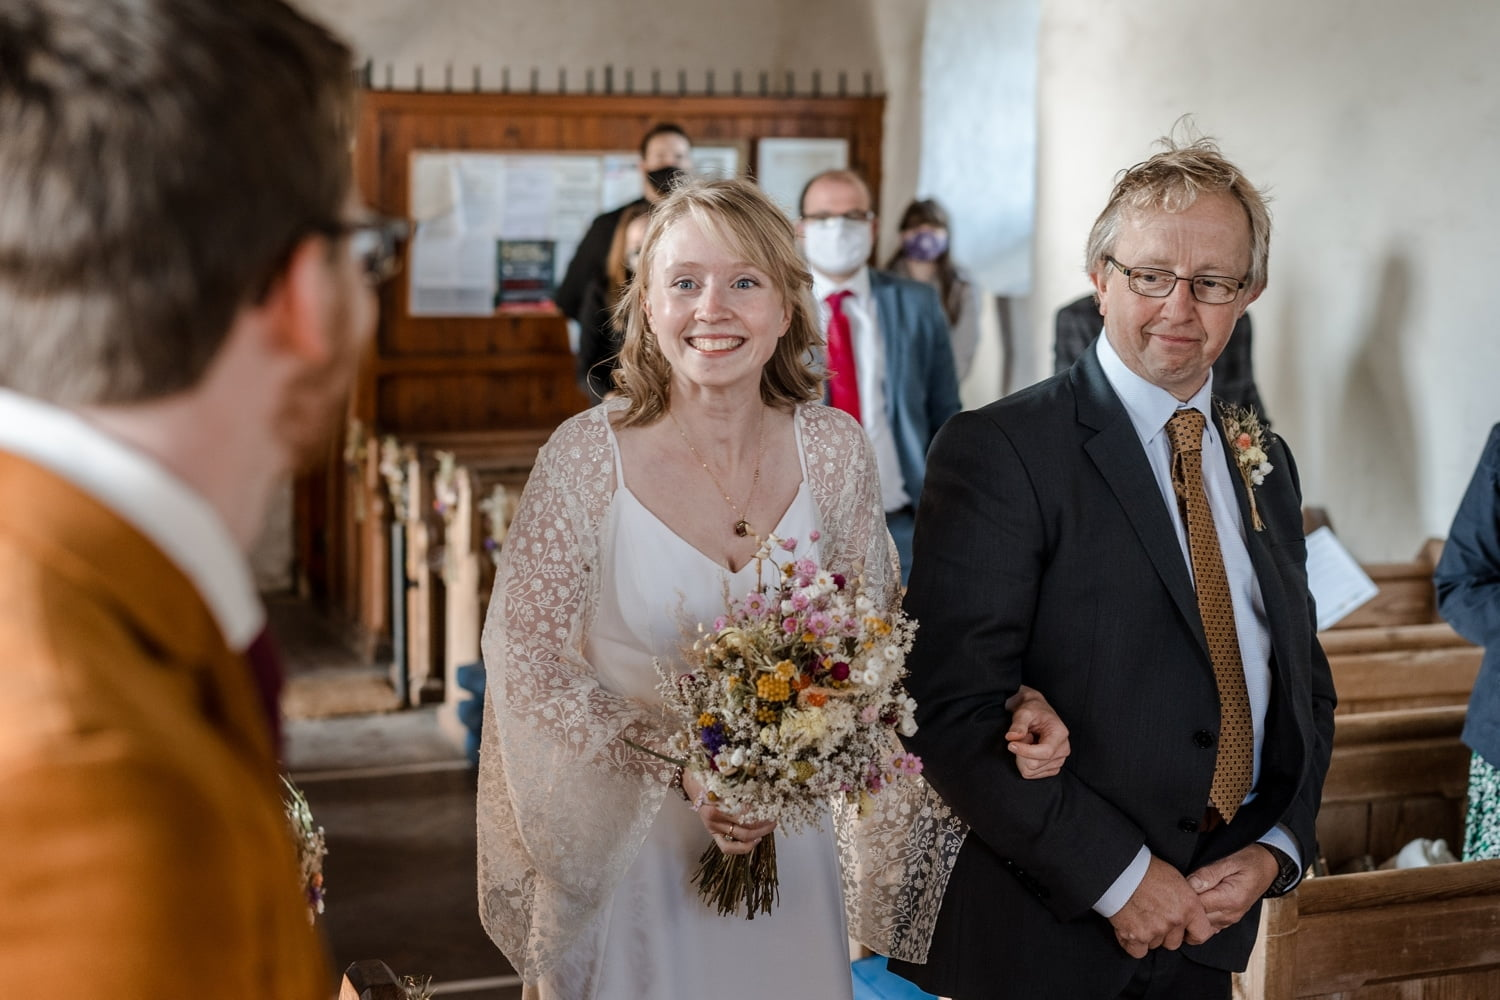 Bride walks down aisle with father at Mwnt Church